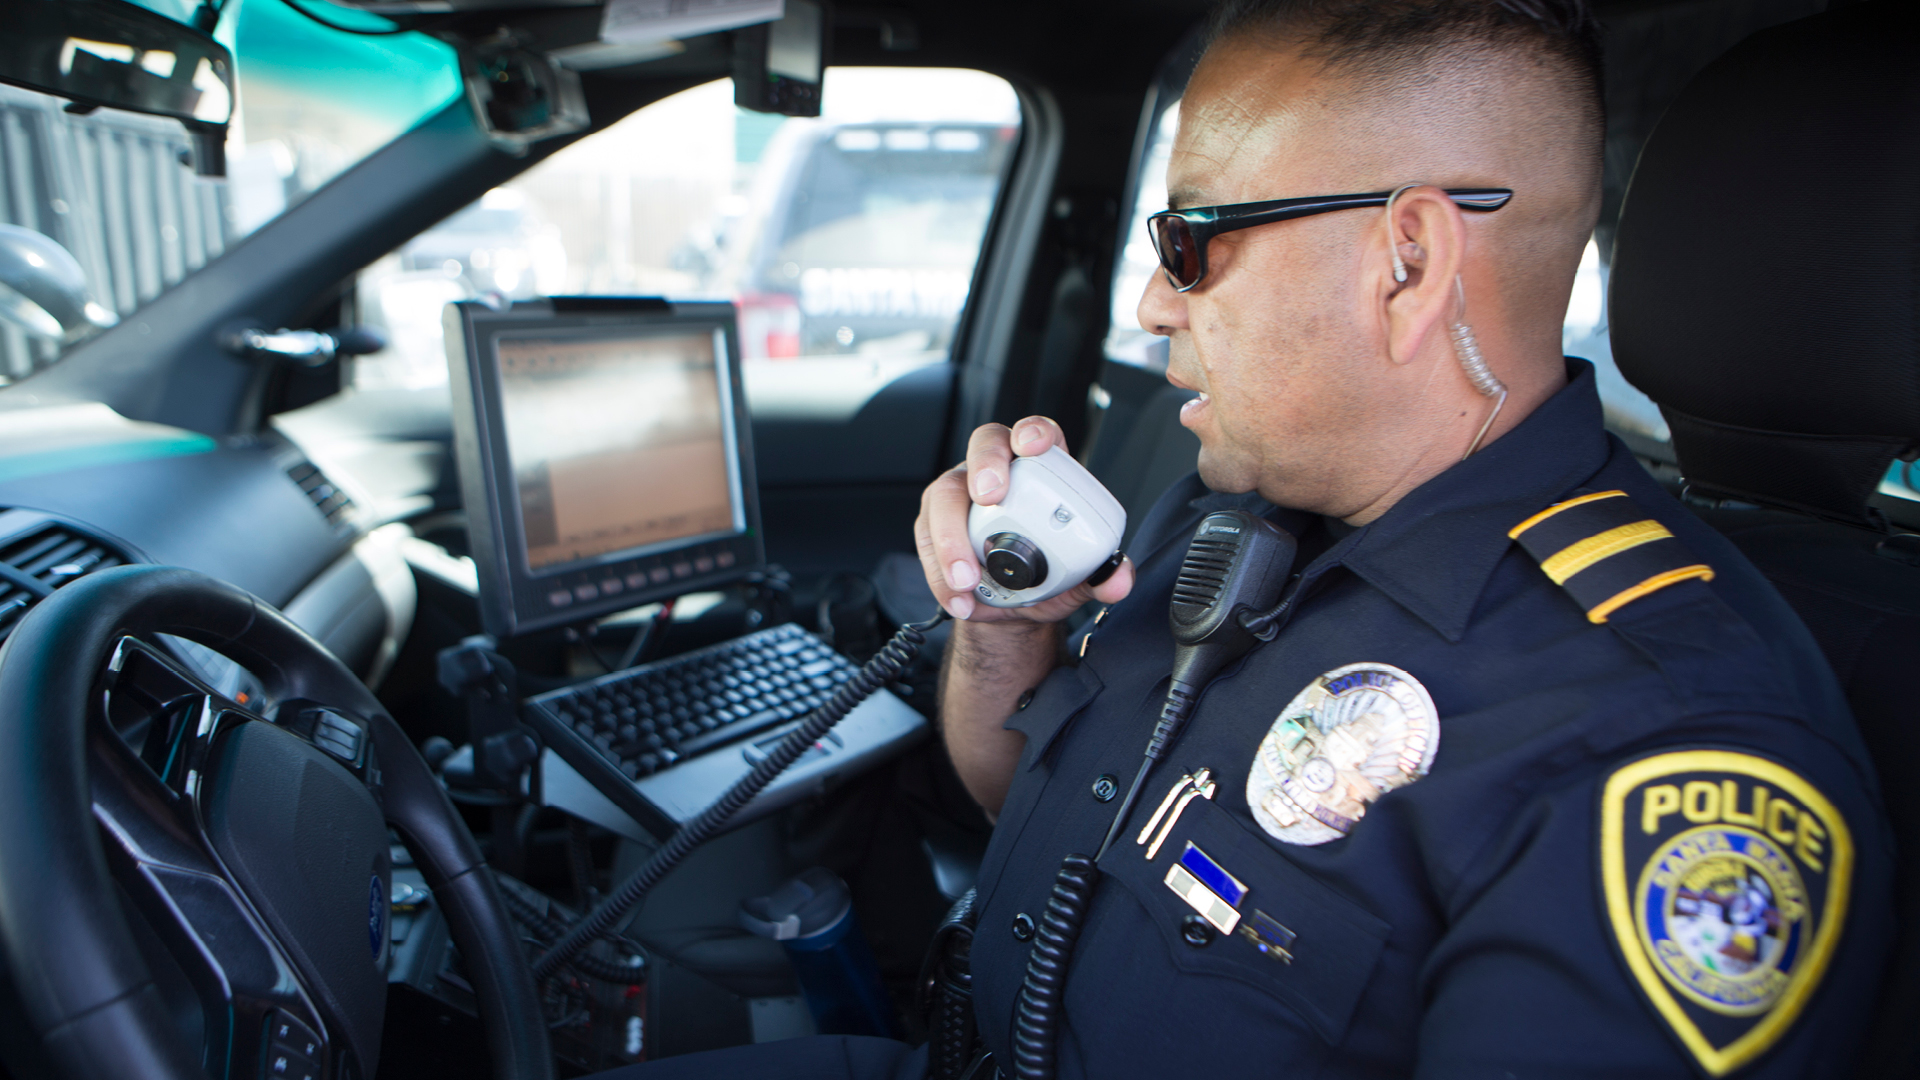 City of Santa Maria Upgrades to Enhance Community Protection